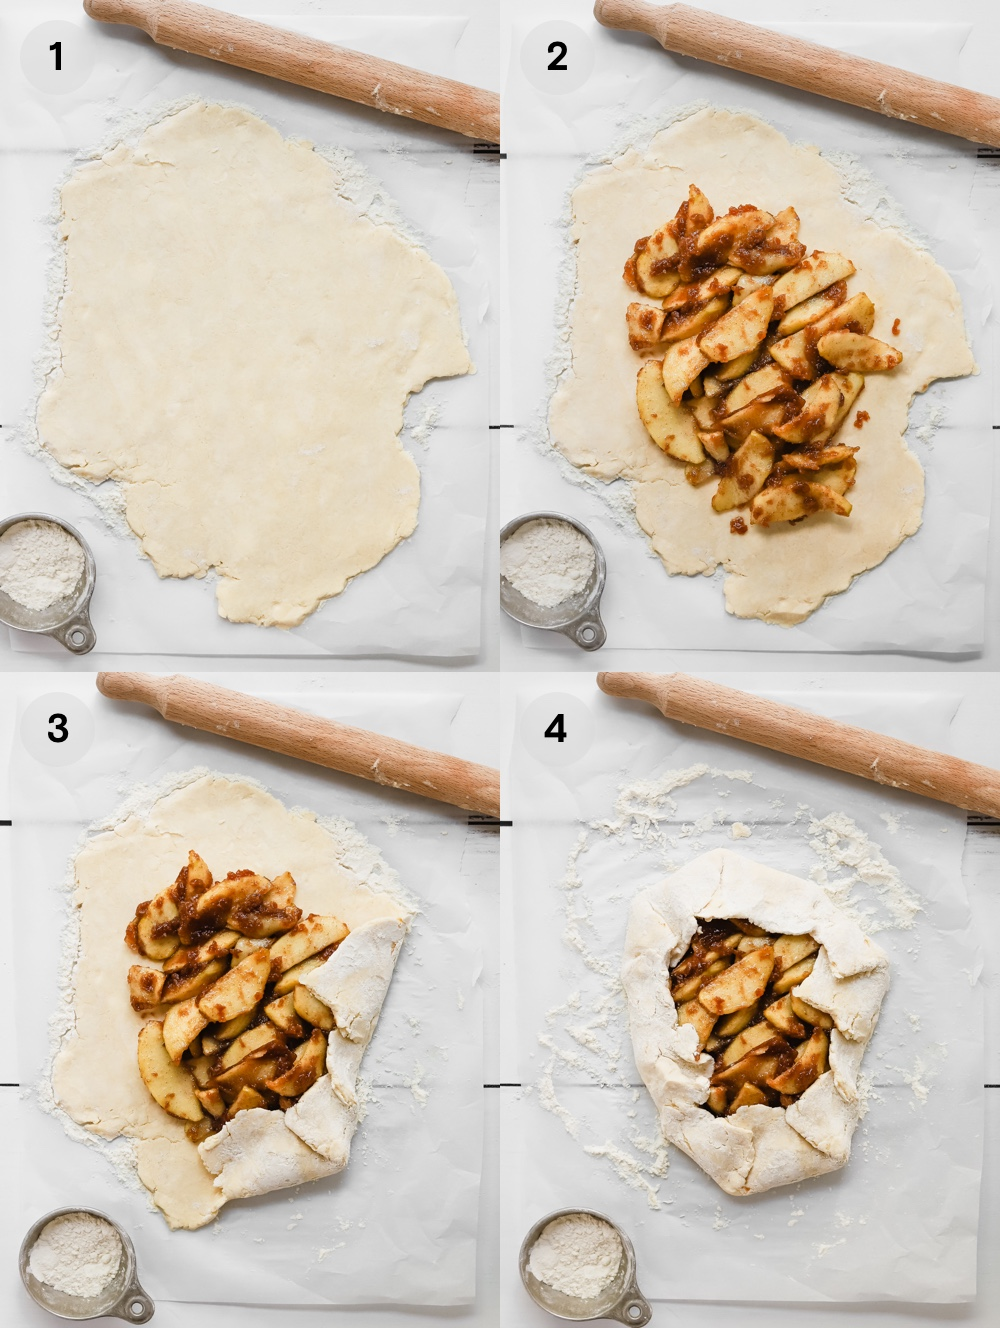 How to fold a vegan galette: roll out the dough, add apple pie filling leaving a 2 inch border around the edges, fold the dough partway over the filling overlapping as needed.